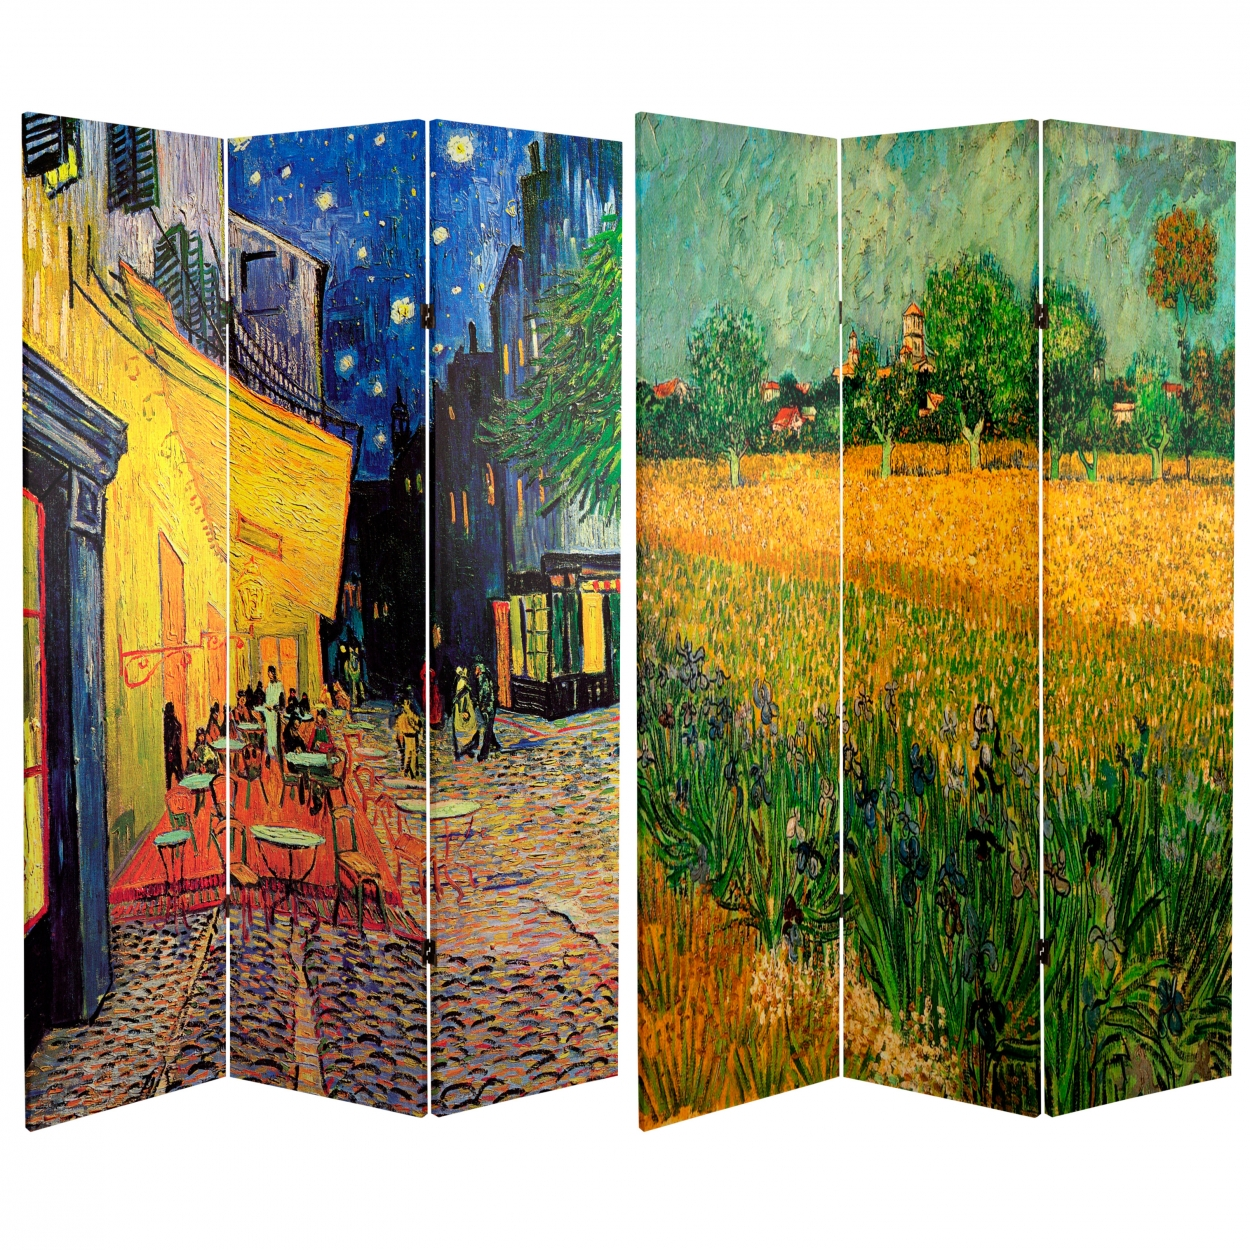 Buy 6 ft Tall Works of Van Gogh Room Divider Cafe TerraceView of